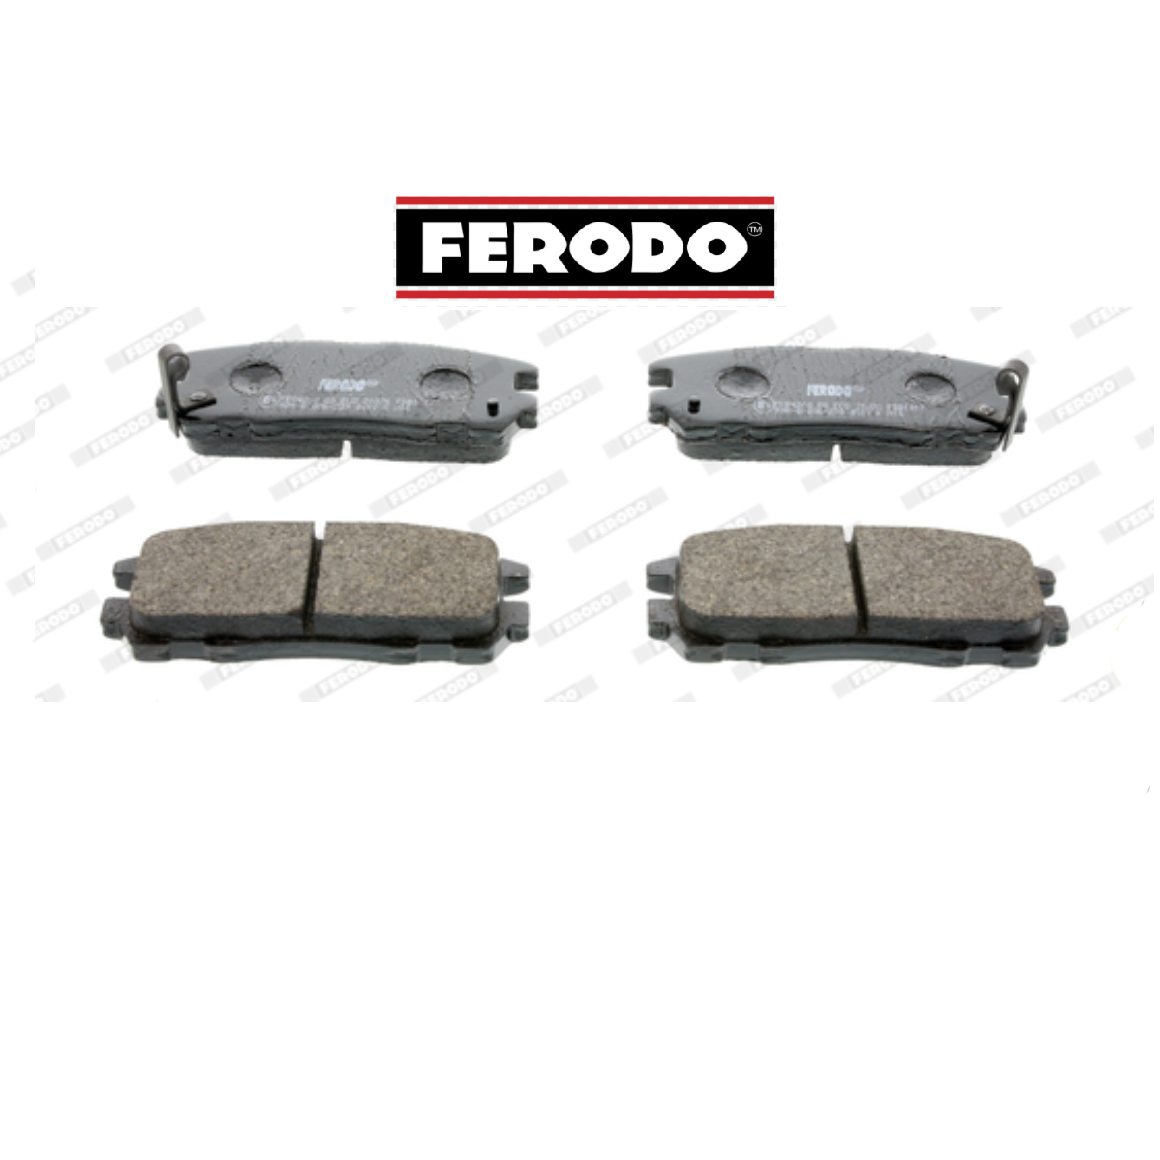 REAR BRAKE PADS SERIES KIT FOR OPEL FRONTERA FERODO FDB1017 FOR 1605851